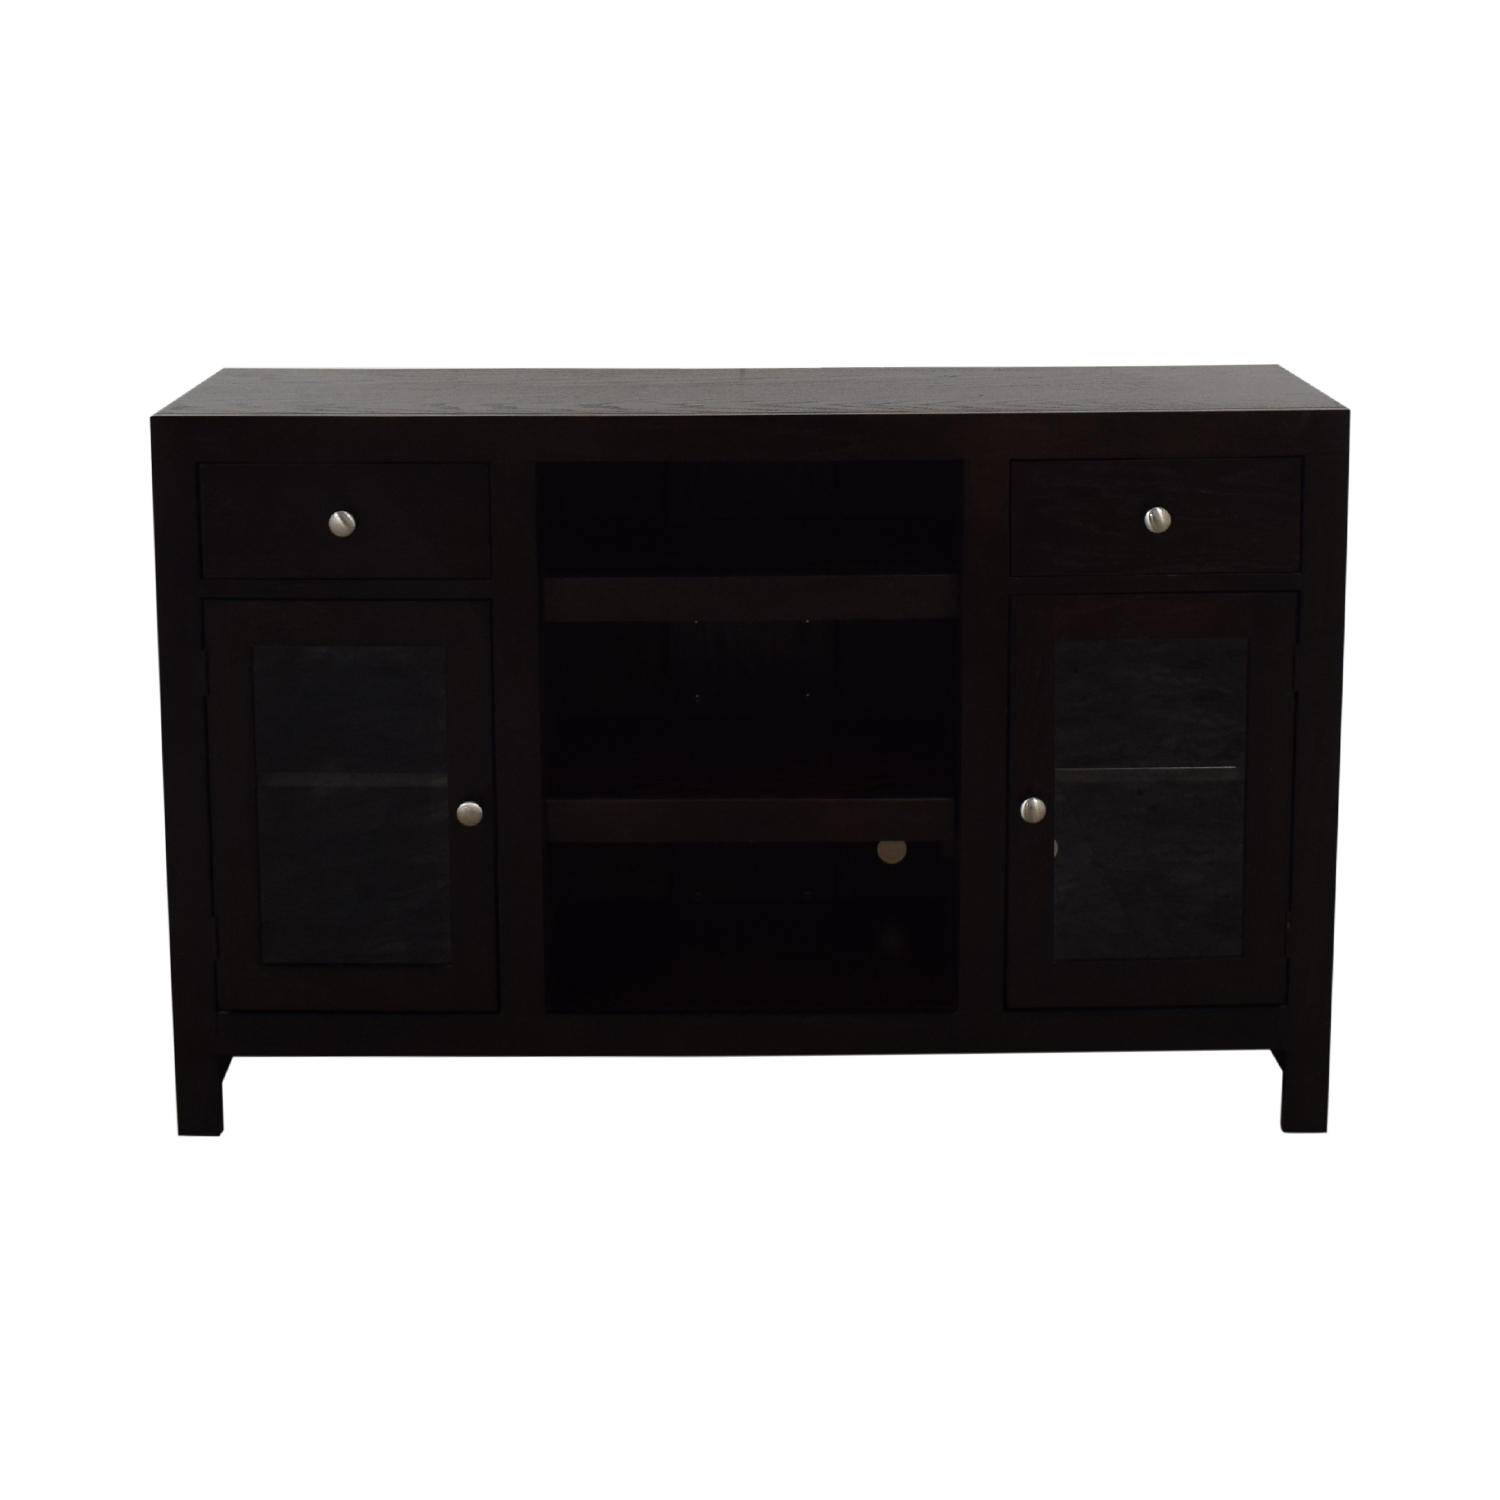 Whalen Furniture Whalen Furniture Sideboard BROWN